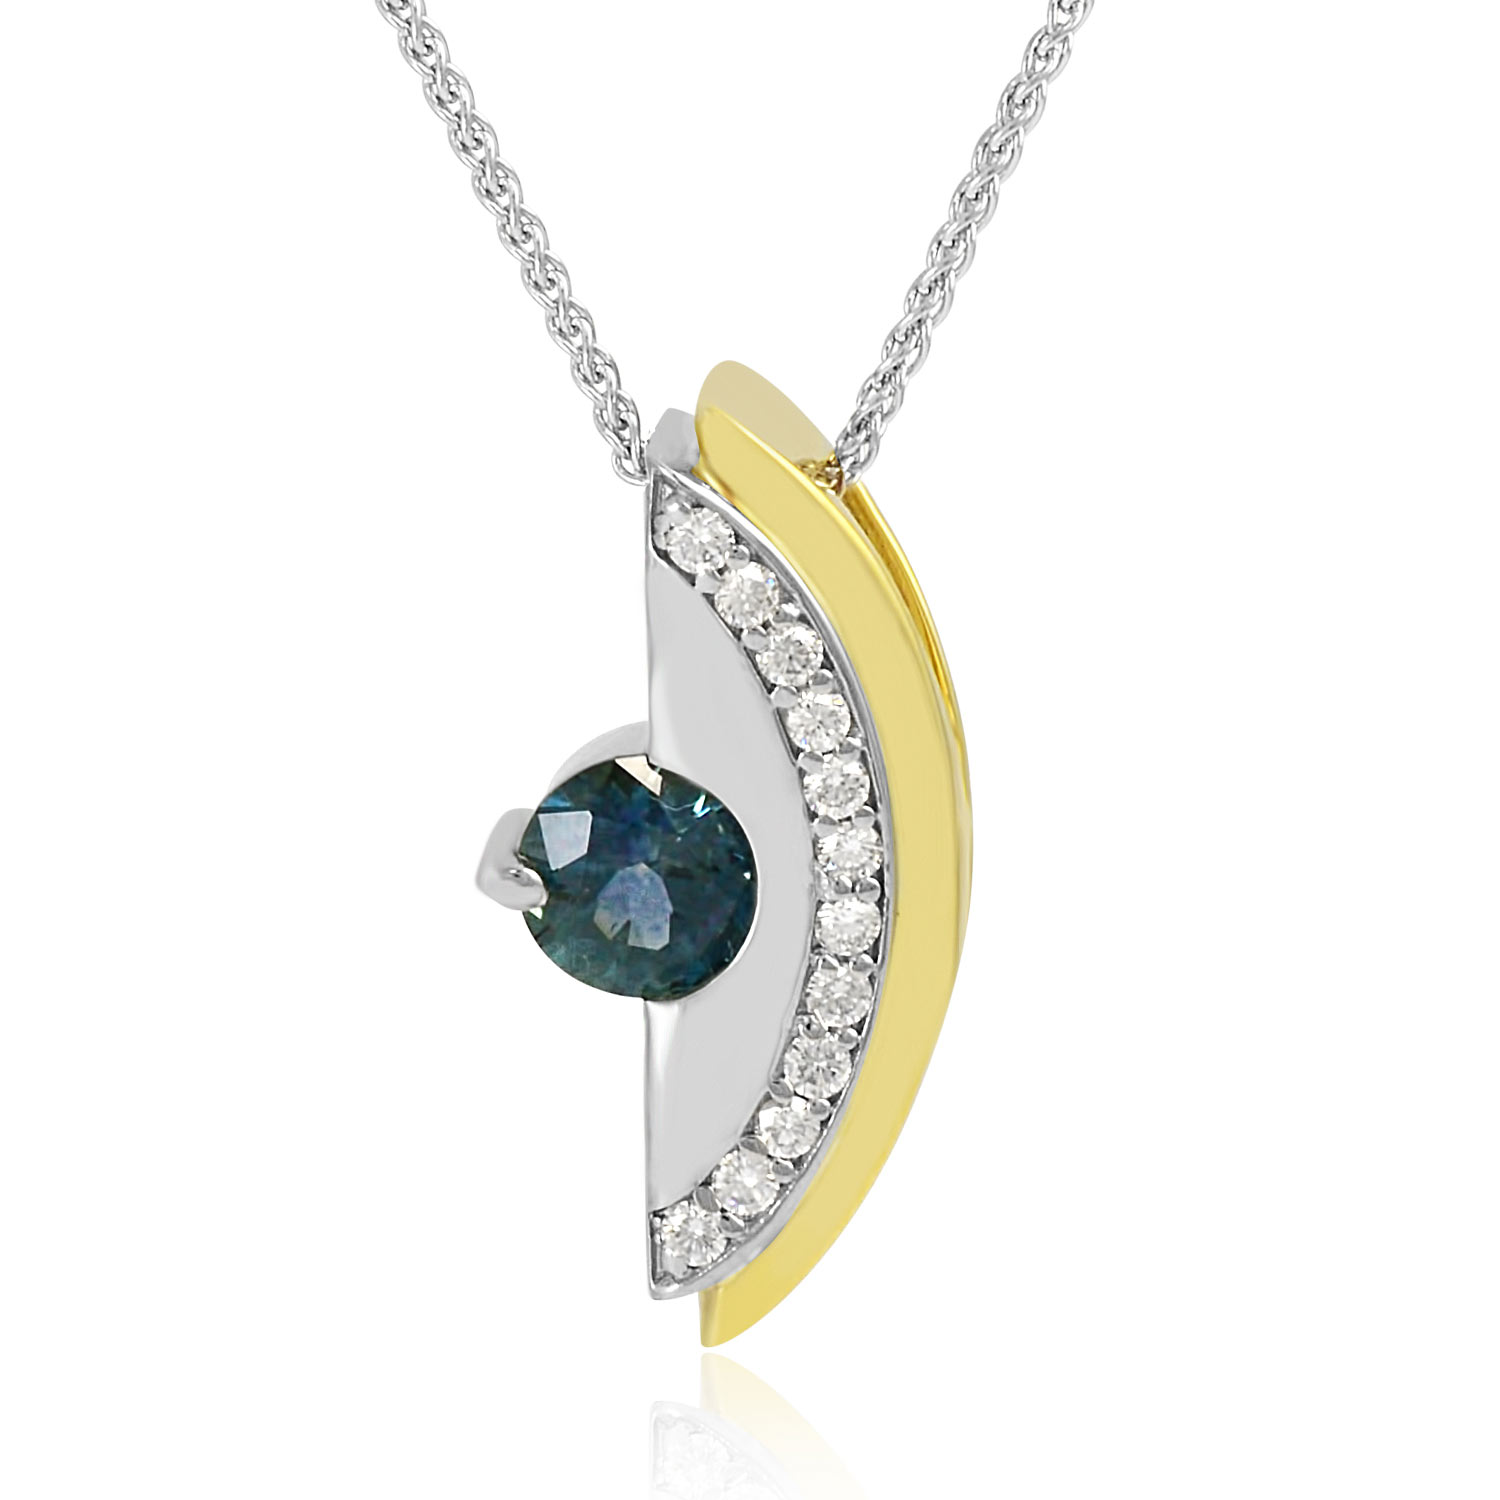 14KW&Y-Two-Tone-Montana-Sapphire-Necklace-P857.jpg